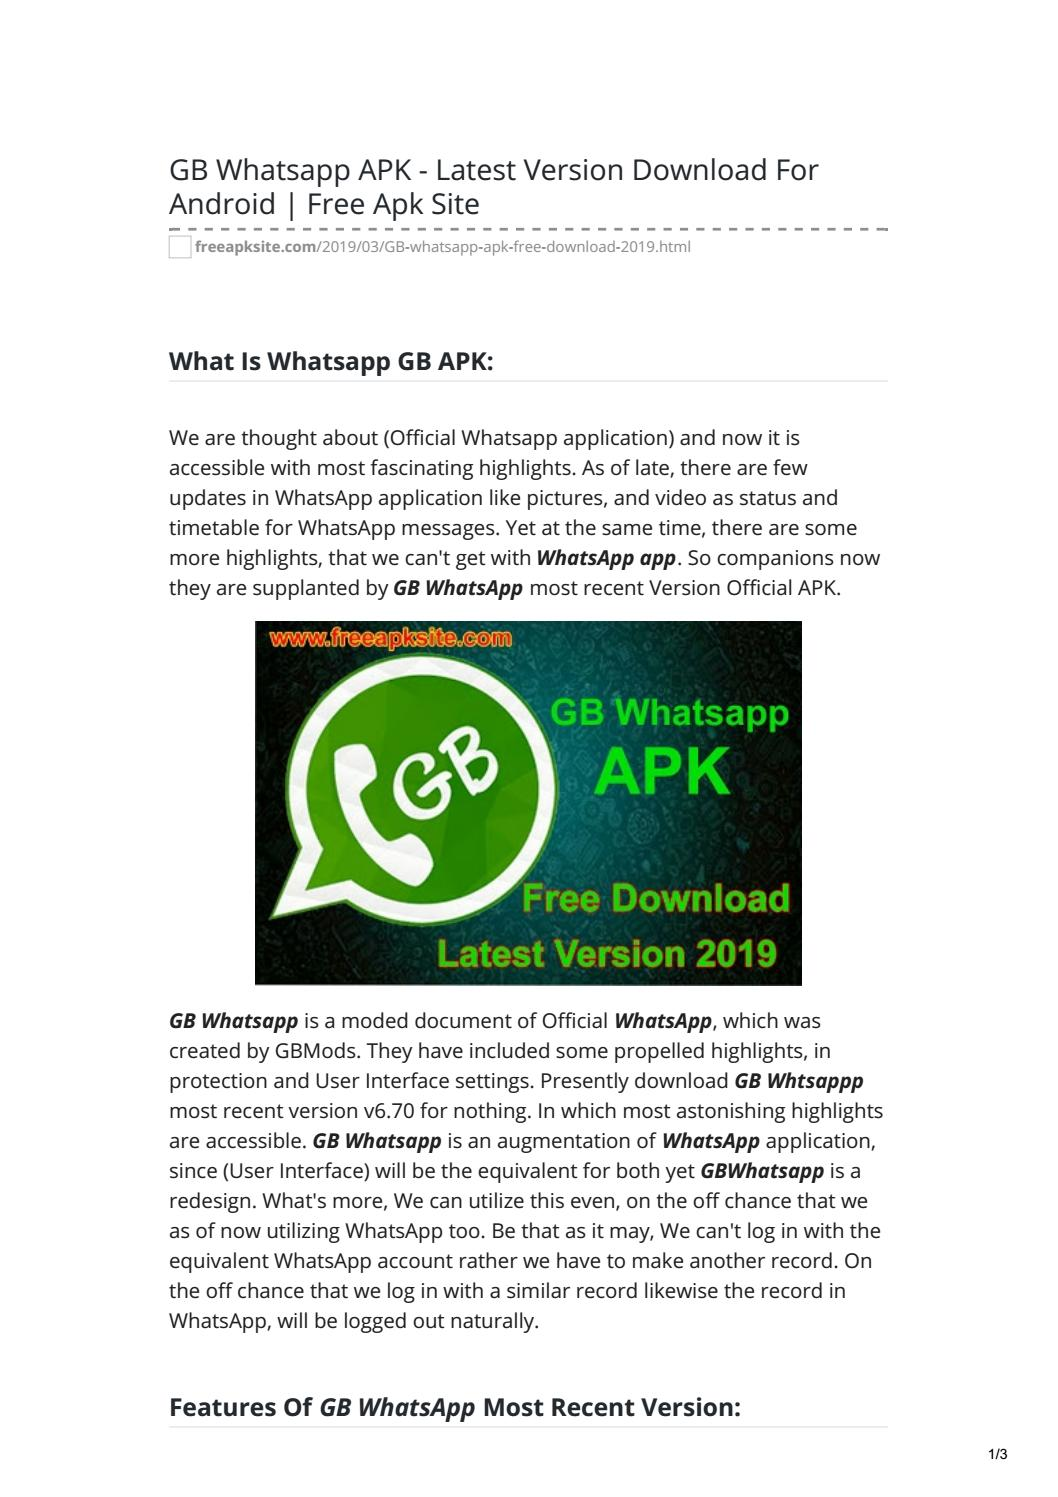 GB Whatsapp APK - Latest Version Download For Android Free Apk Site